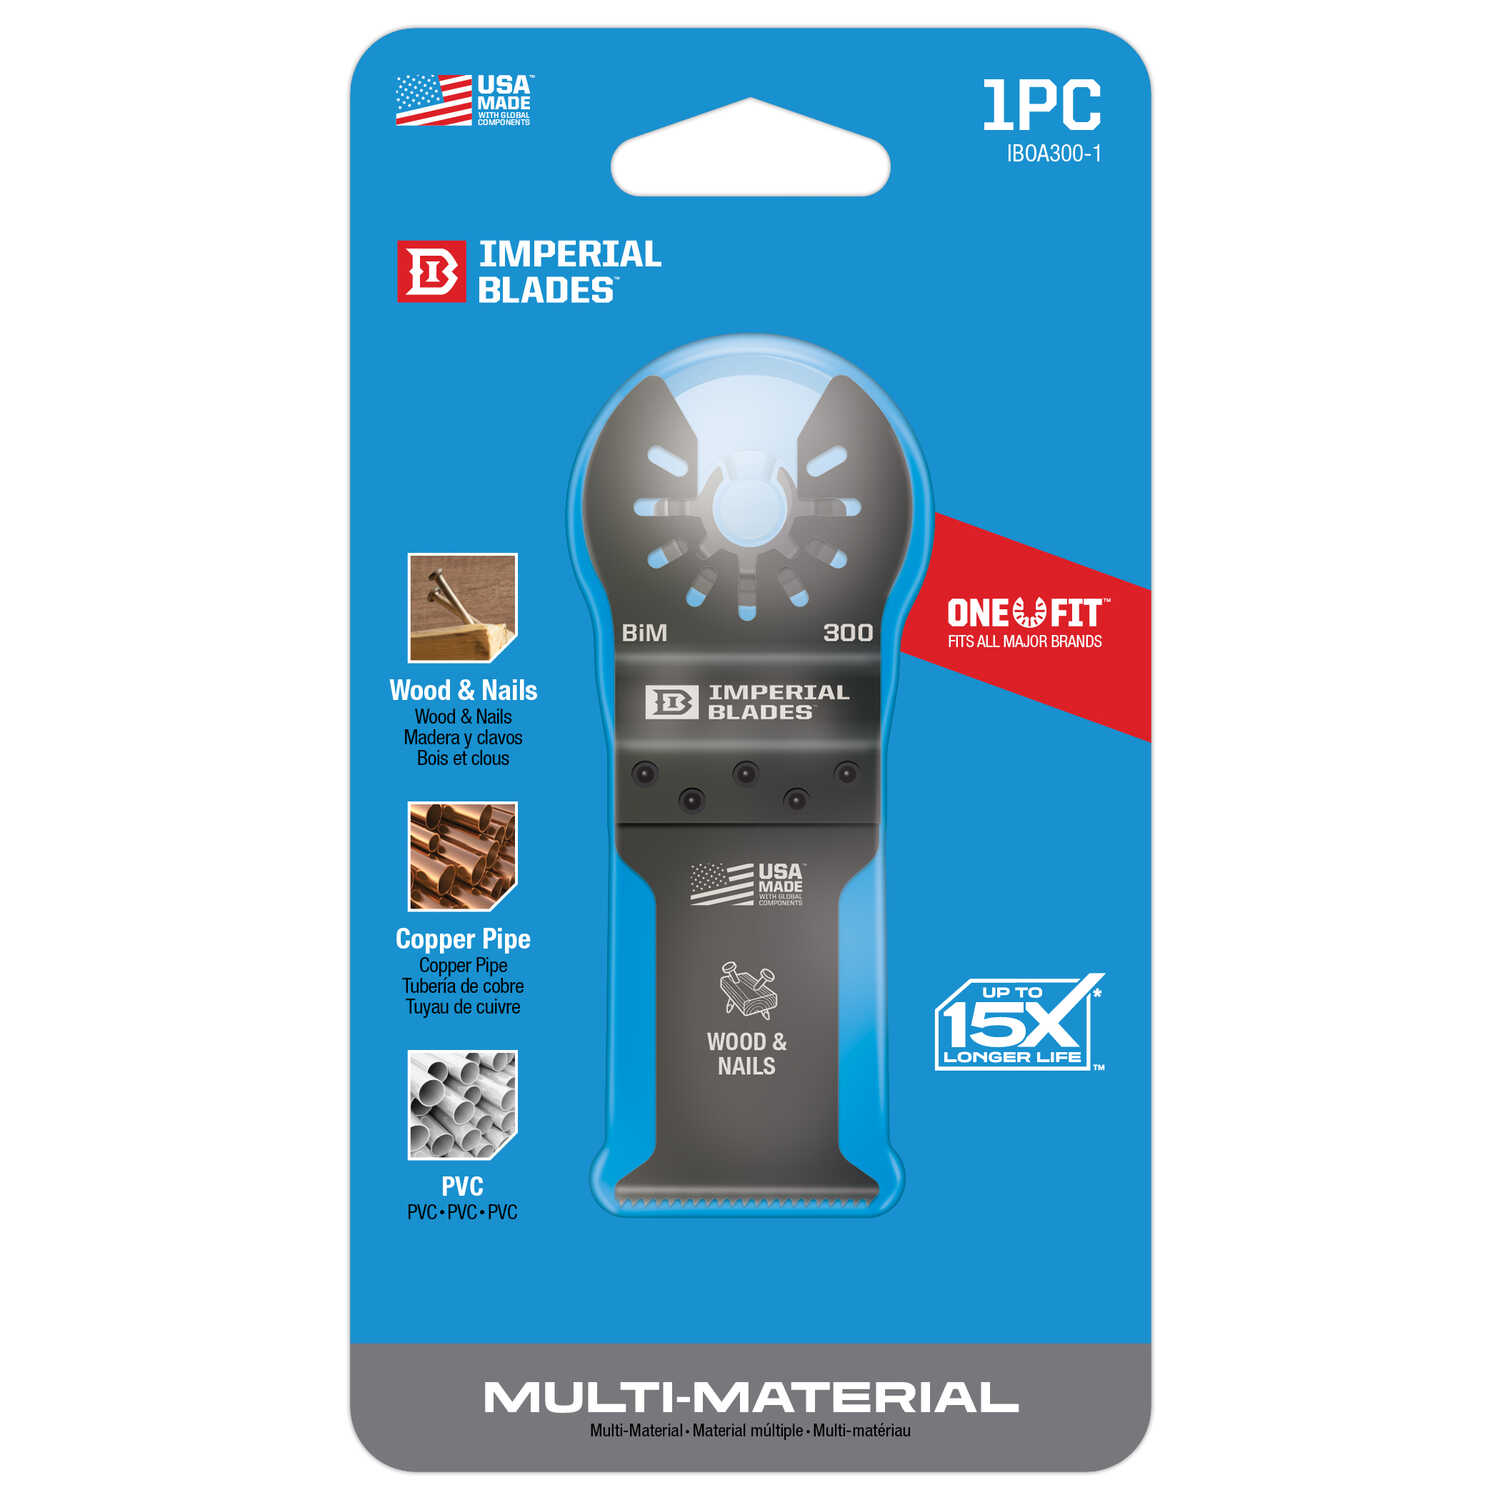 Imperial Blades  OneFit  1-1/4 in. Dia. Bi-Metal  Oscillating Saw Blade  1 pk